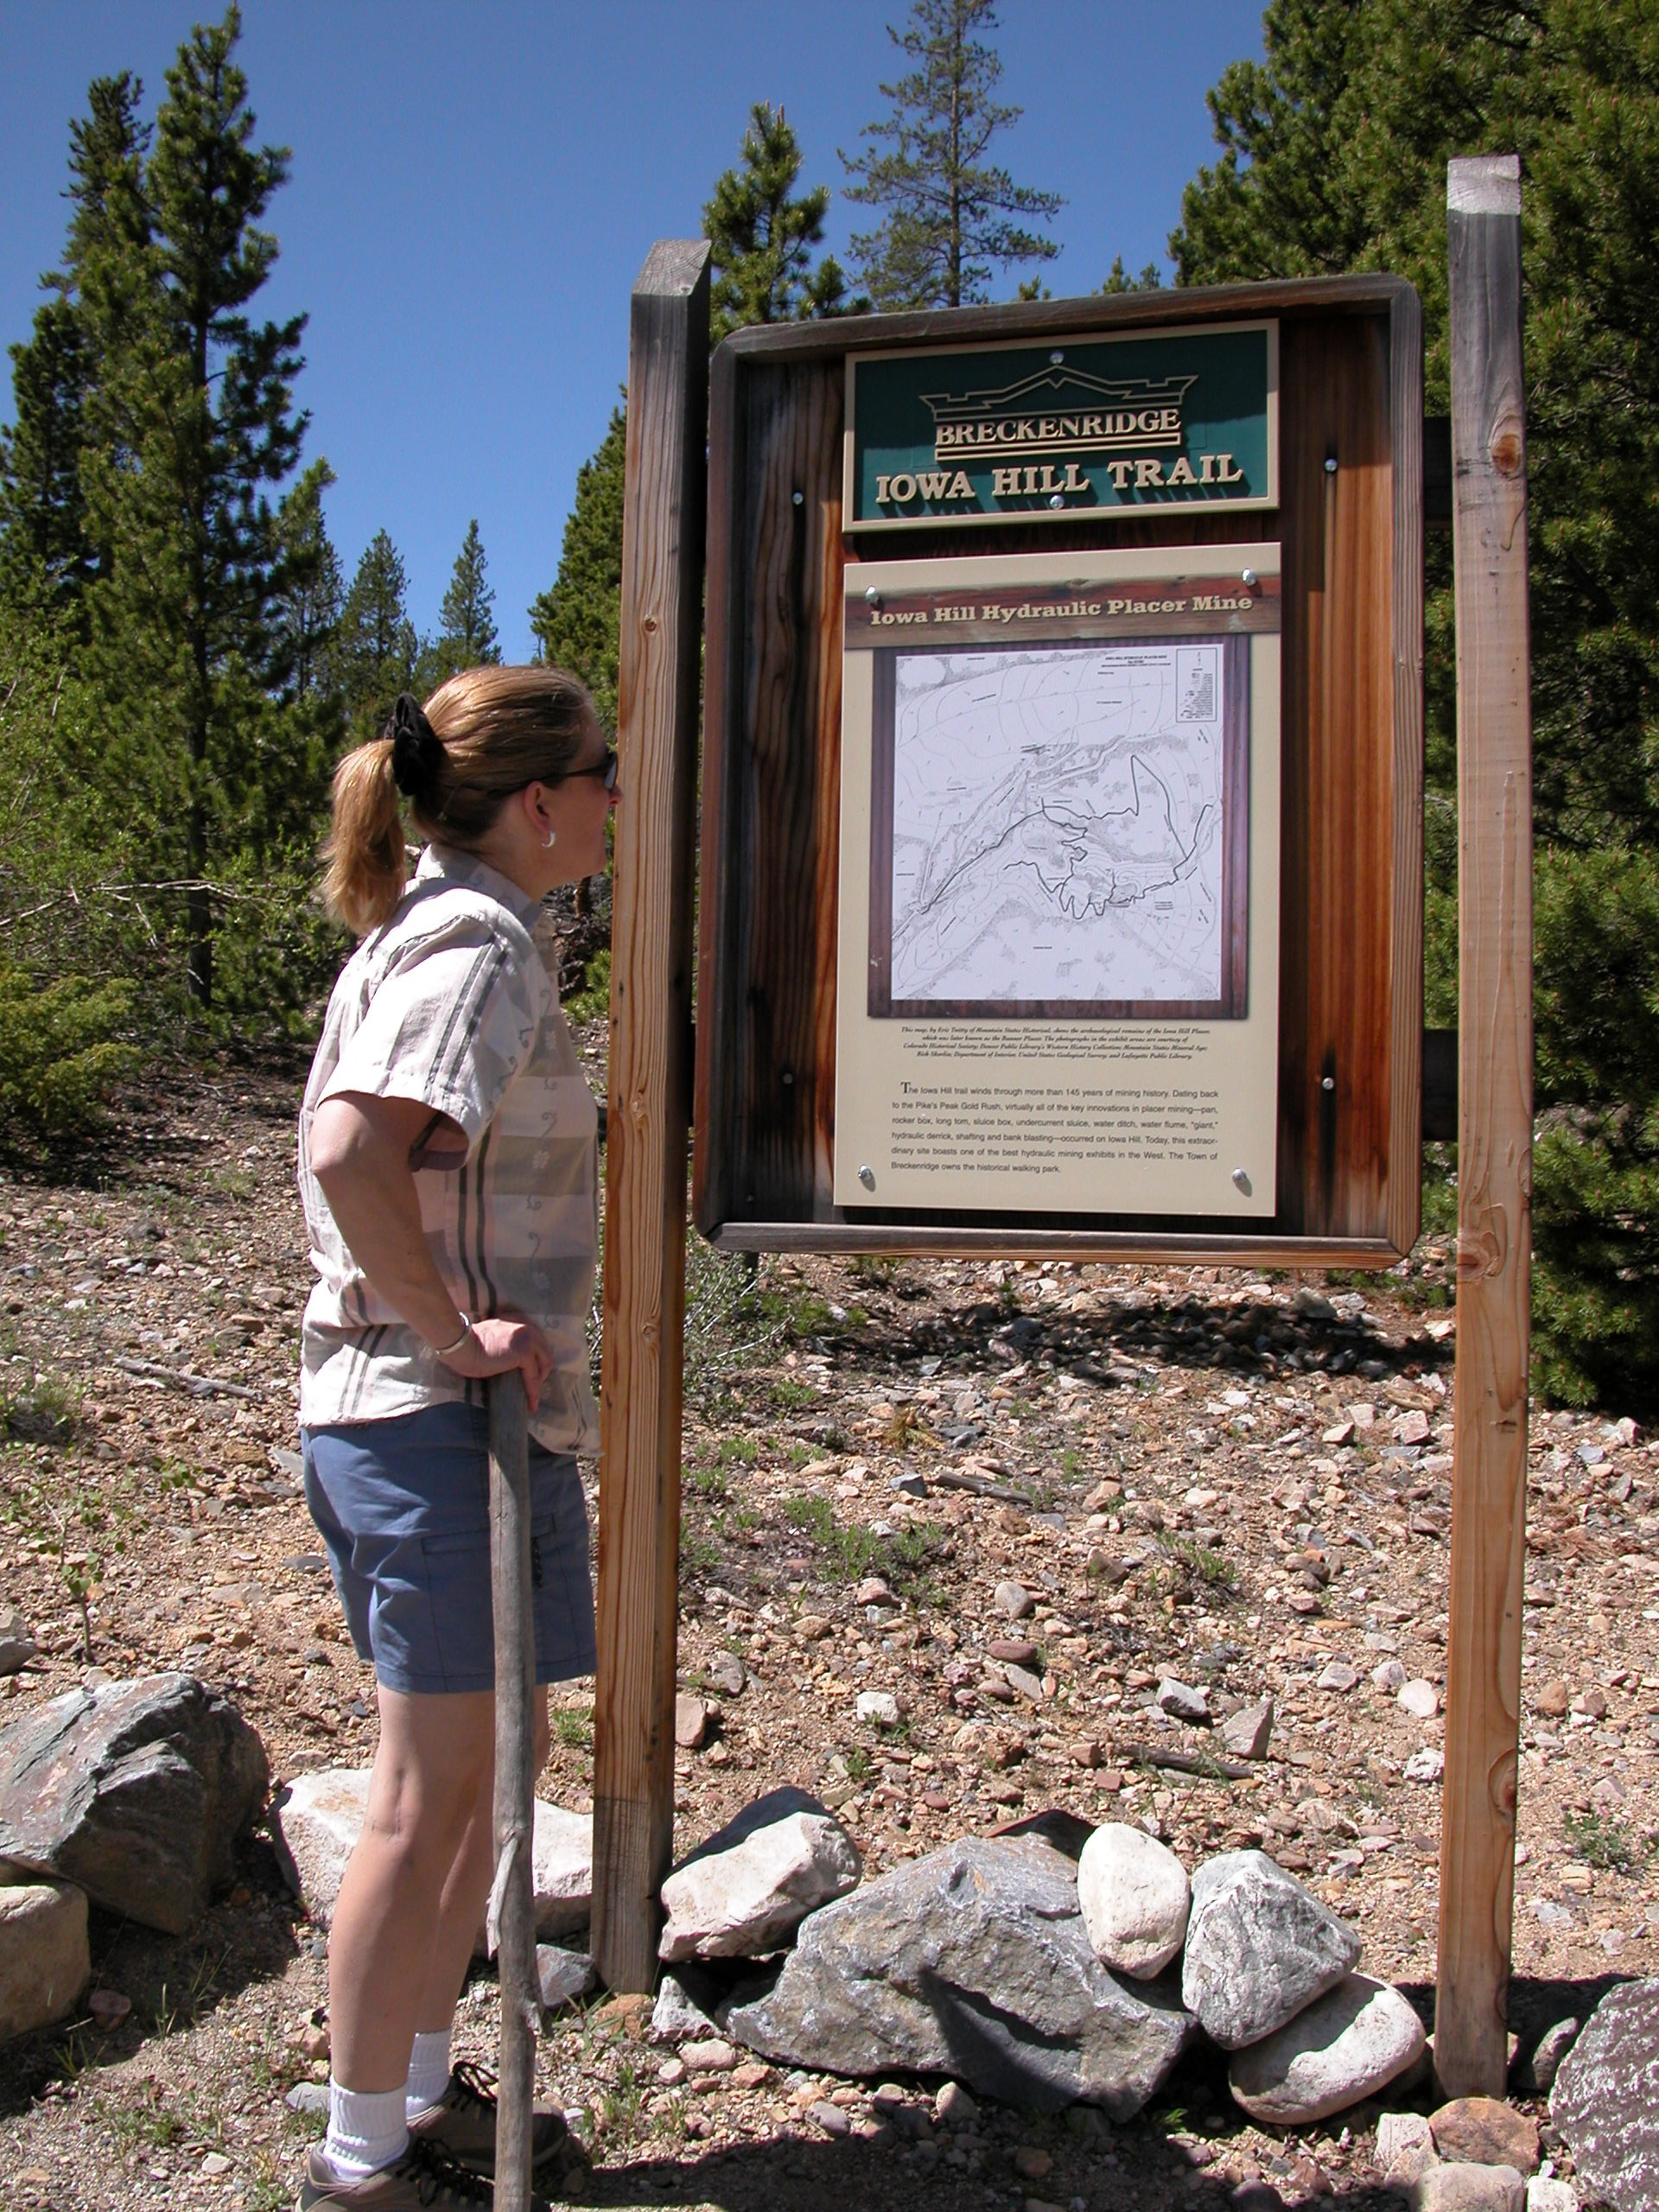 A woman studies a map at the trailhead leading to the Iowa Hill Hydraulic Placer Mine. Historic mining sites are central to the heritage of Breckenridge, Colorado.